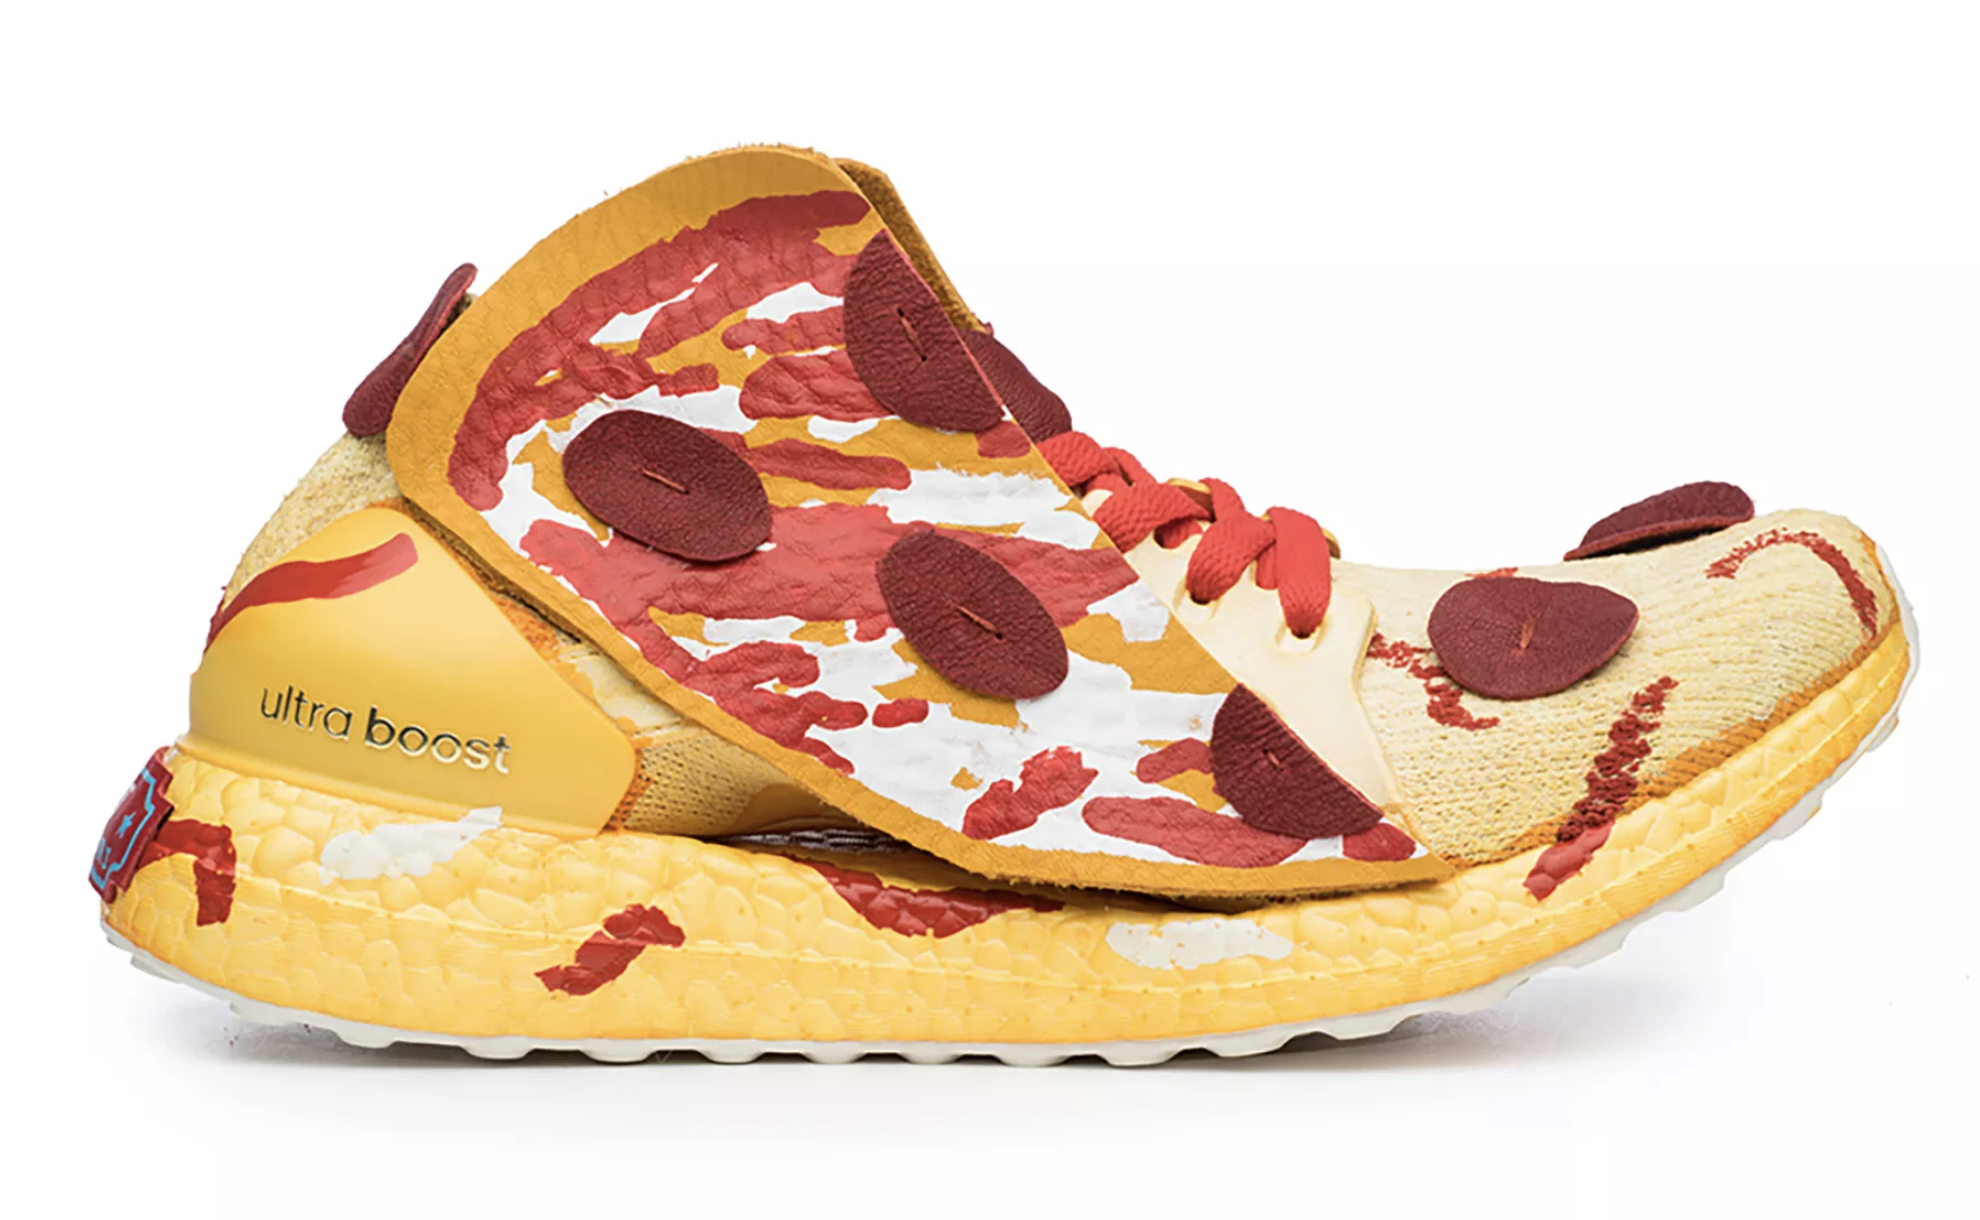 Adidas pizza shoes